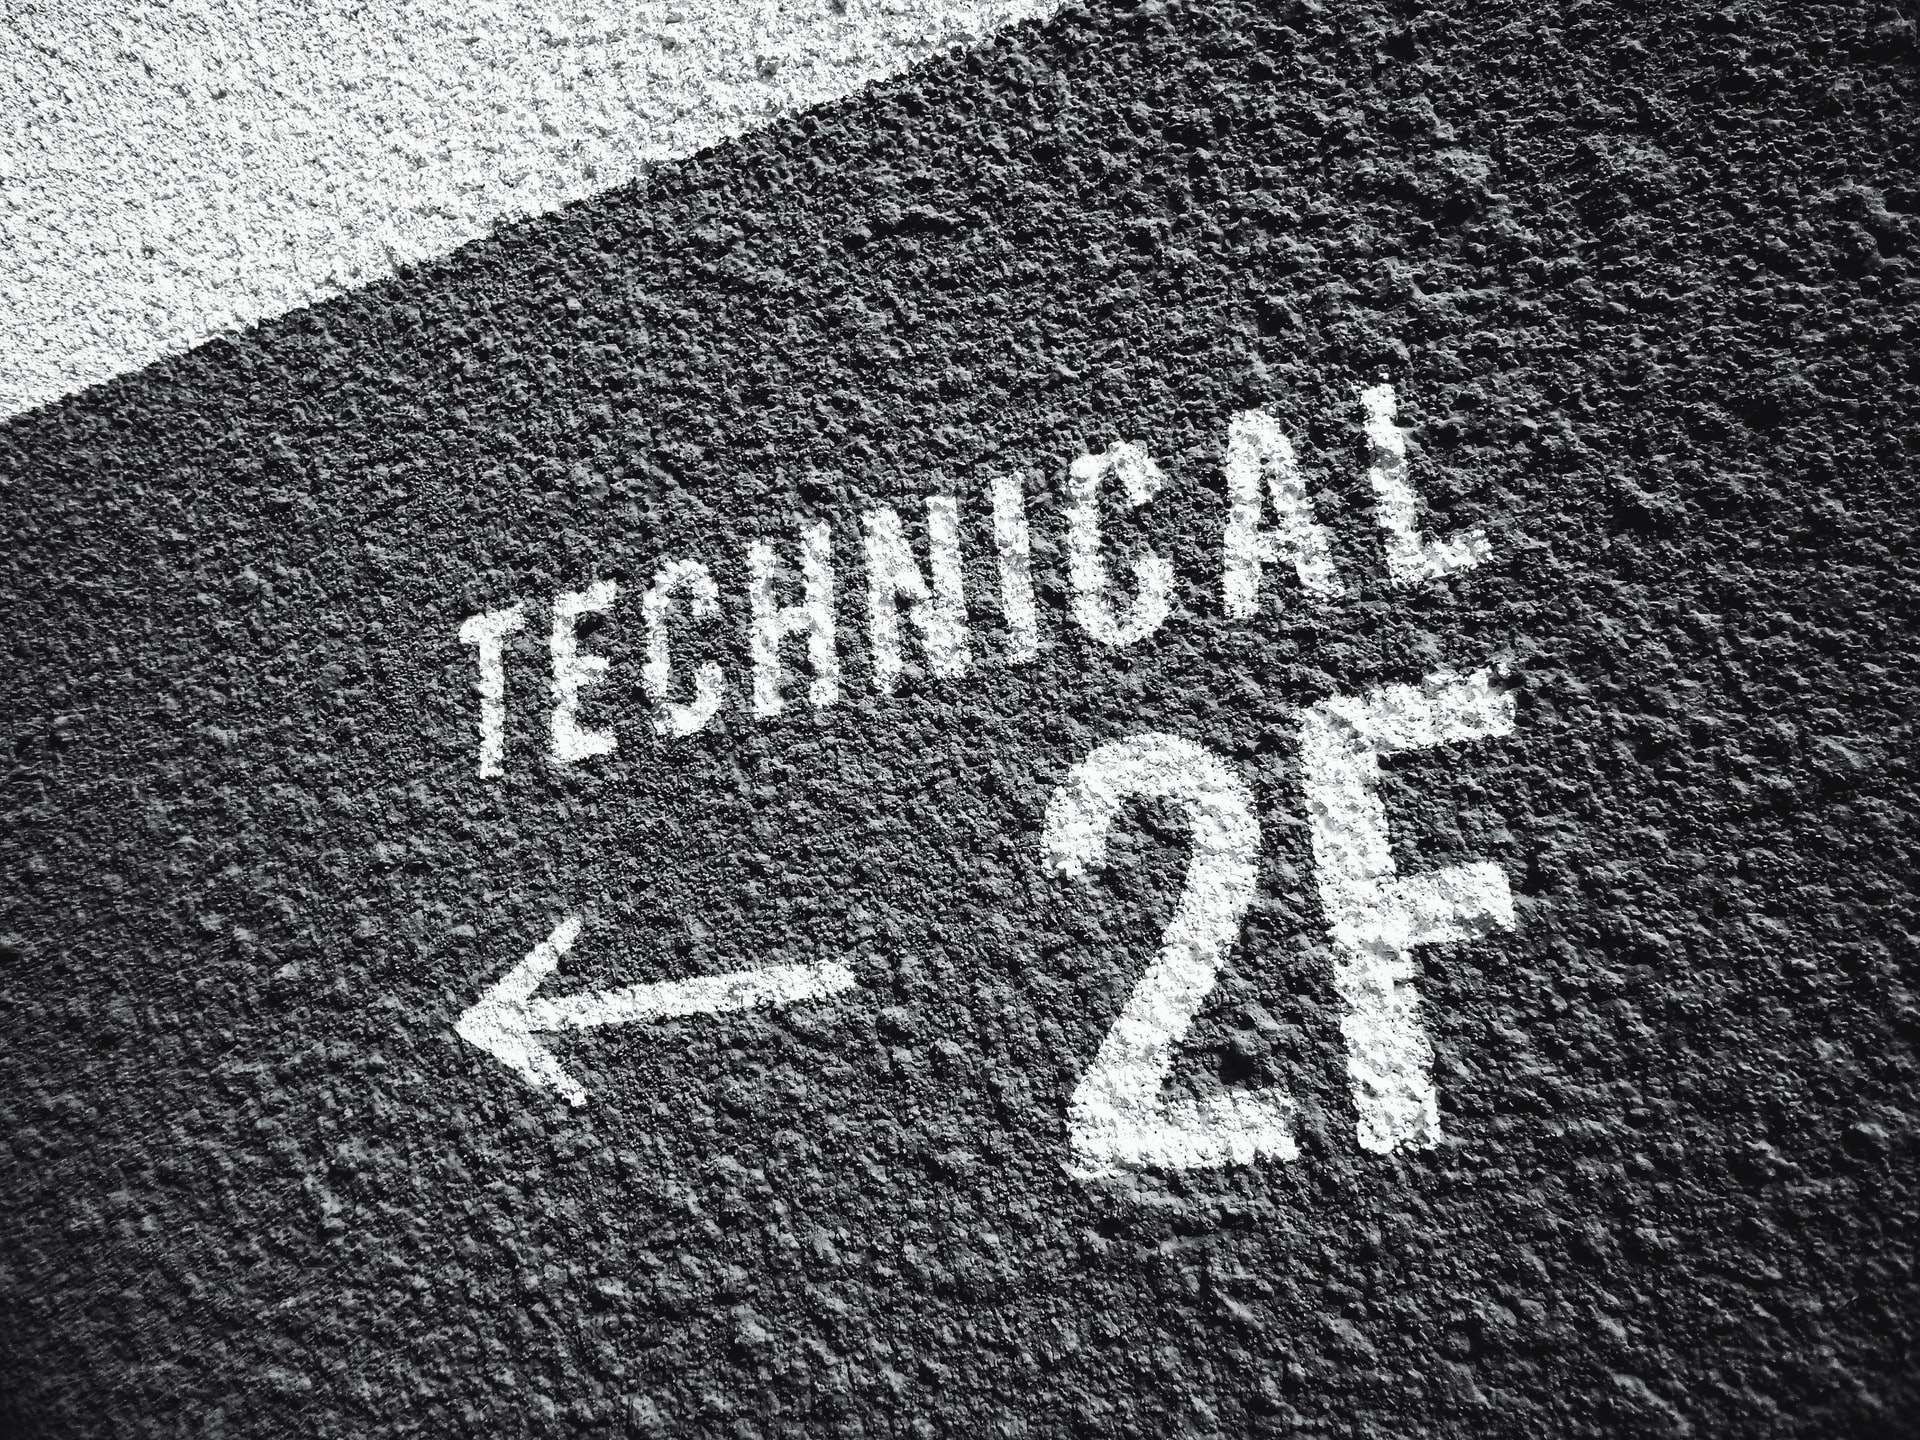 Important Points for Becoming a Technical Writer